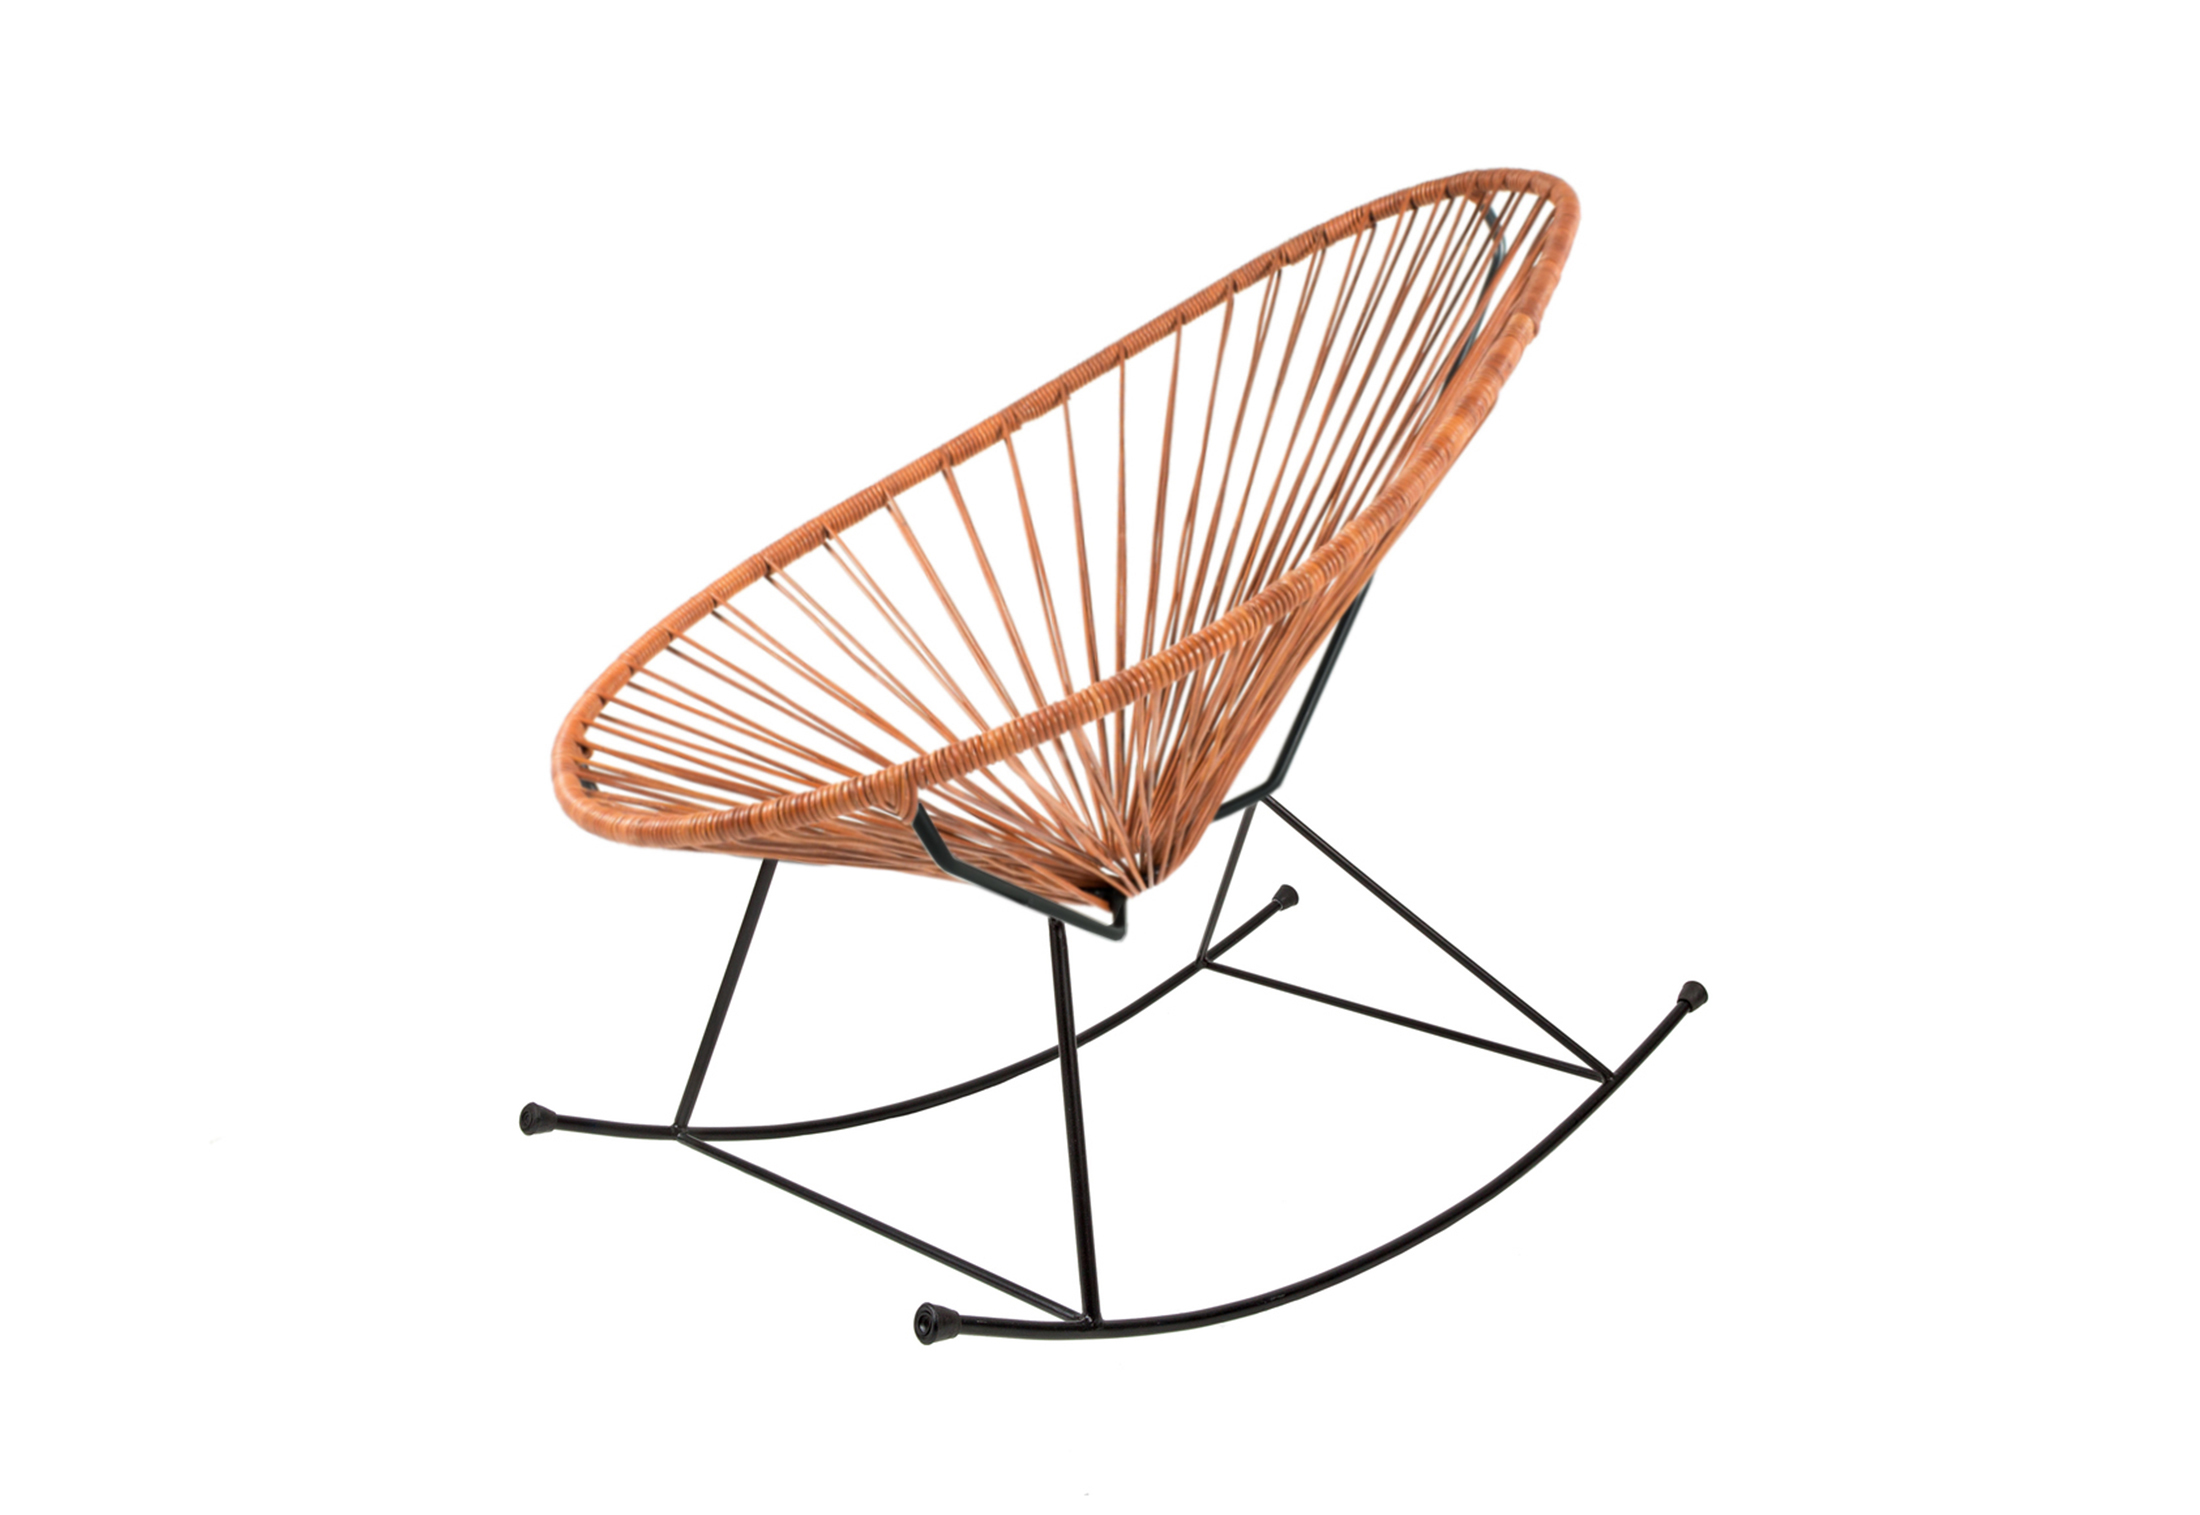 Outstanding Acapulco Chair Rocking Leather Cognac By Acapulco Design Caraccident5 Cool Chair Designs And Ideas Caraccident5Info